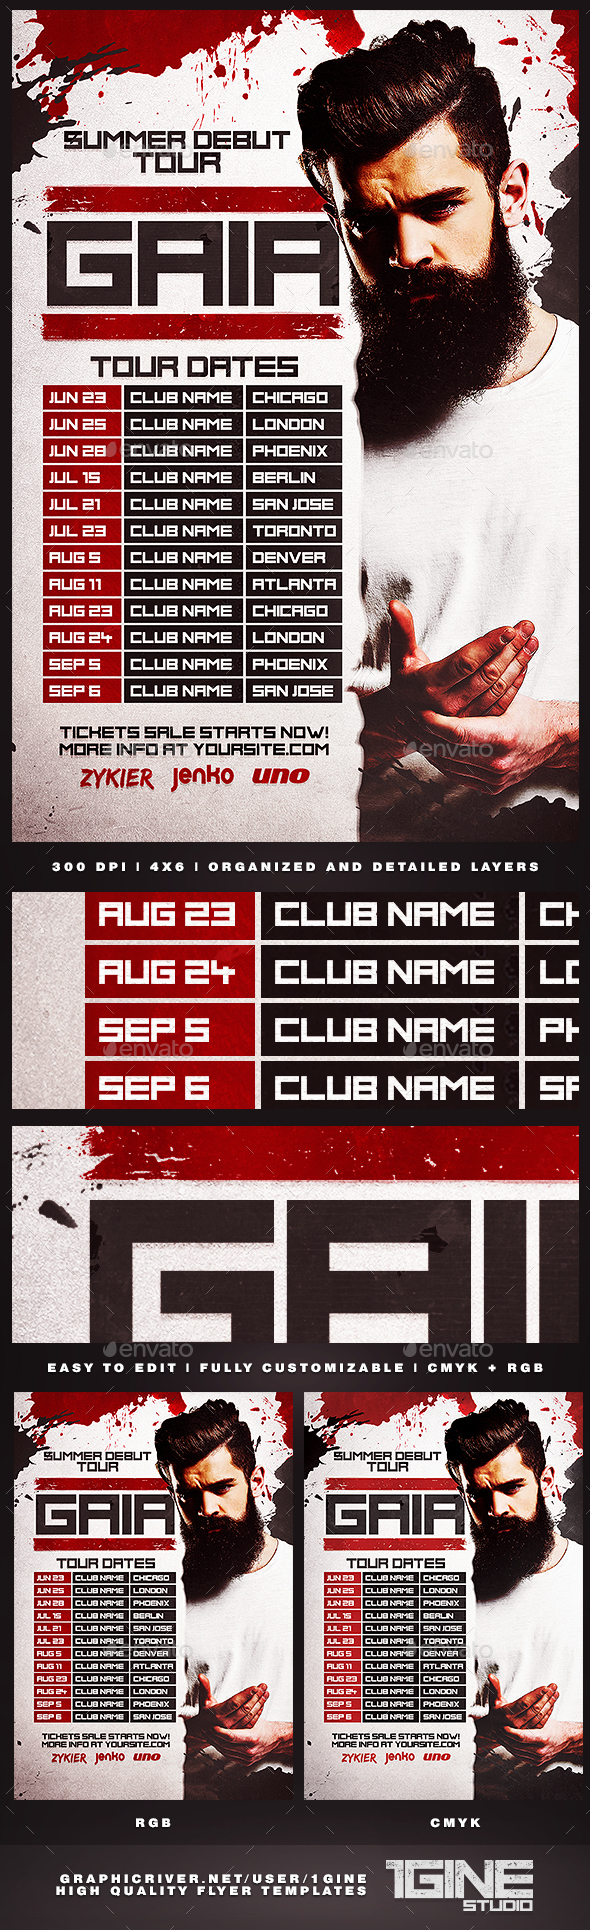 DJ Tour Dates Flyer Template - Clubs & Parties Events